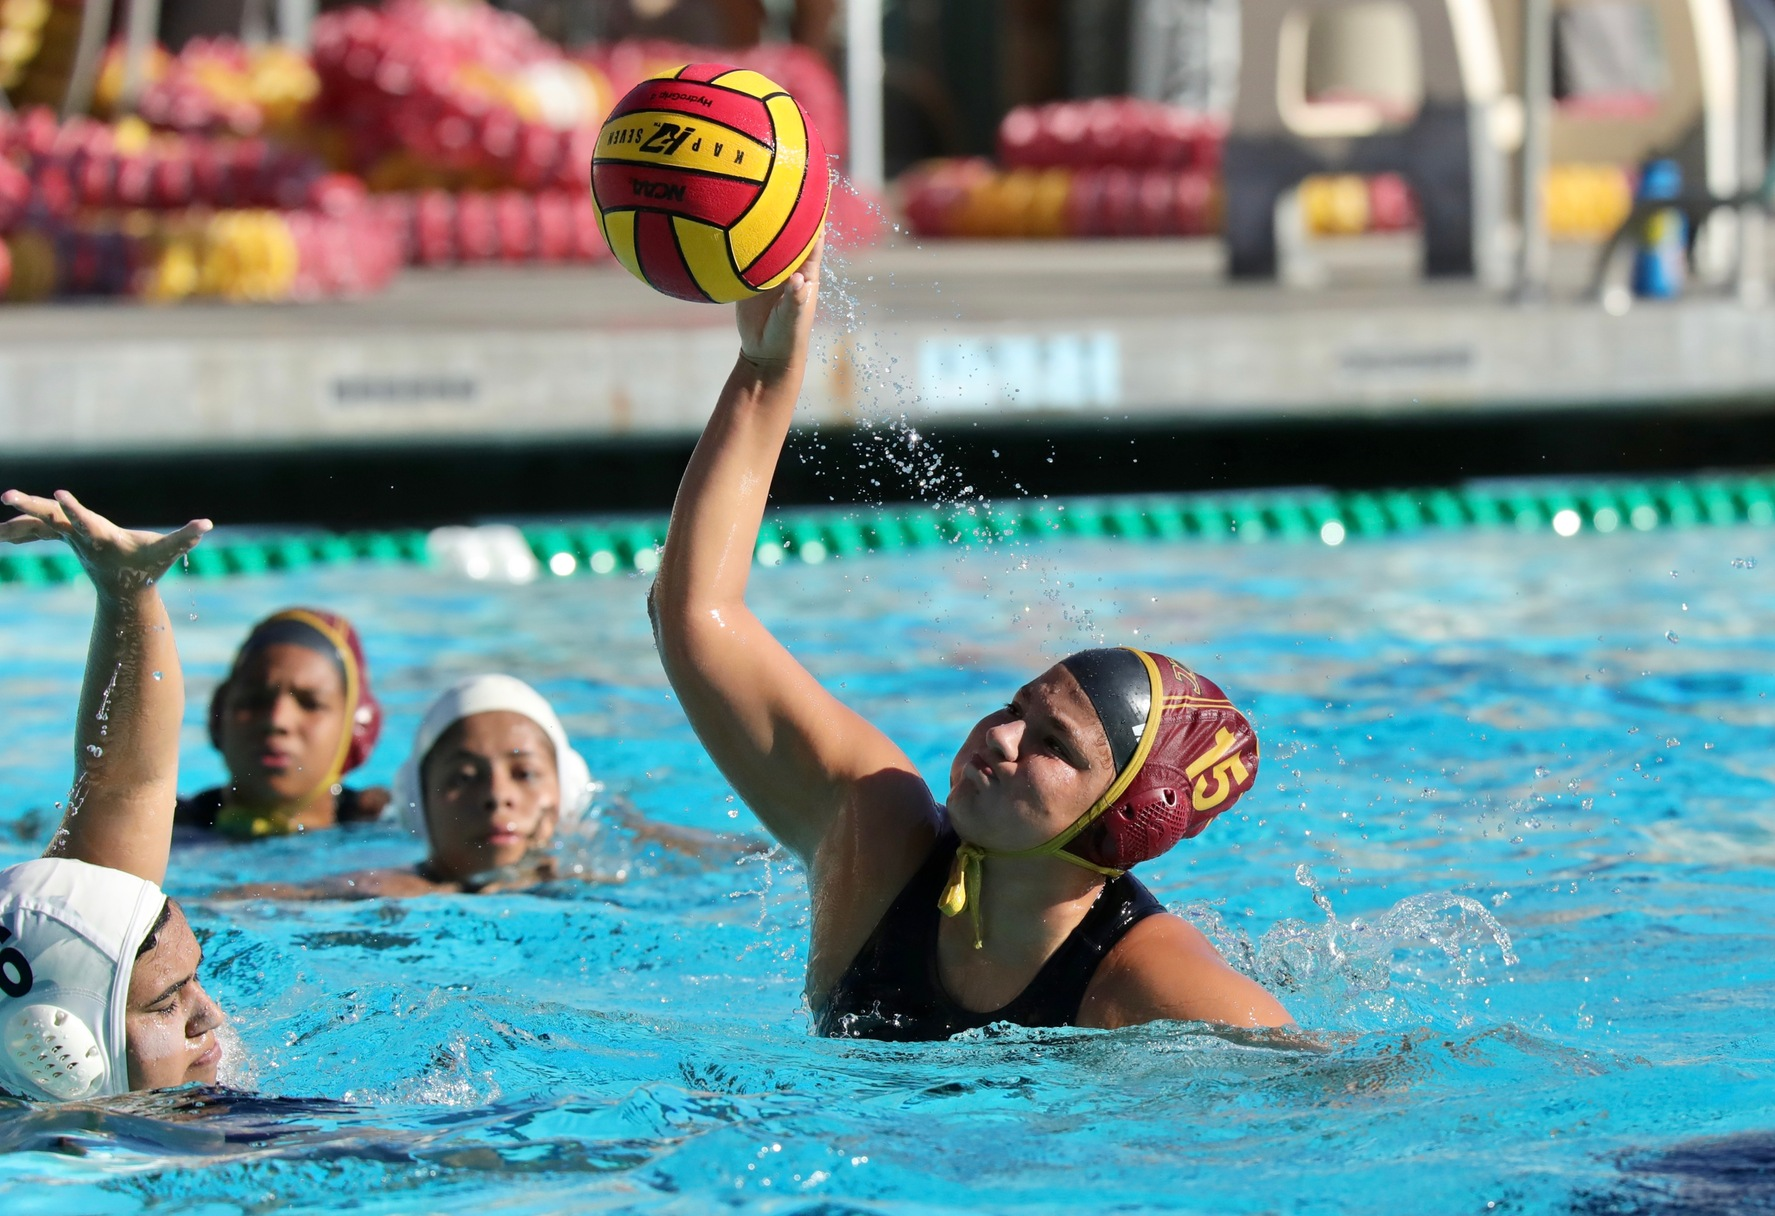 Lancer Fernandez Alvarez fires in one of her three goals in Wednesday's victory at the PCC Aquatic Center, photo by Michael Watkins.